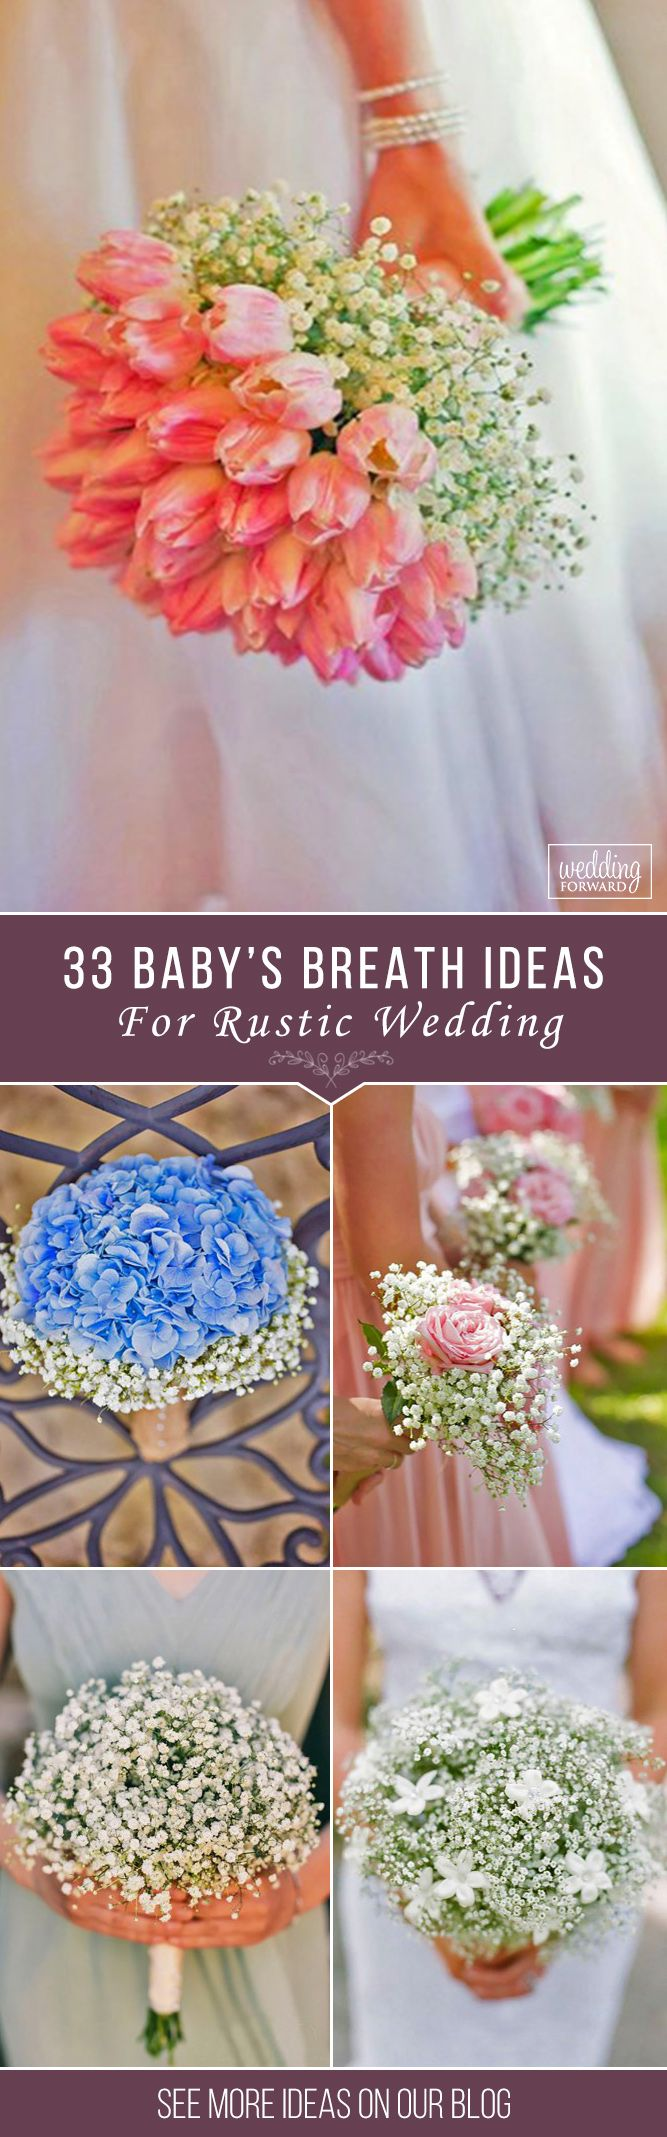 33 Baby's Breath Wedding Ideas For Rustic Weddings ❤ These small white and blush buds will add a fragrant smell and an airy aesthetic to your celebration. See our gallery of baby's breath wedding ideas! See more: http://www.weddingforward.com/babys-breath-wedding-ideas/ ‎ #wedding #bouquets